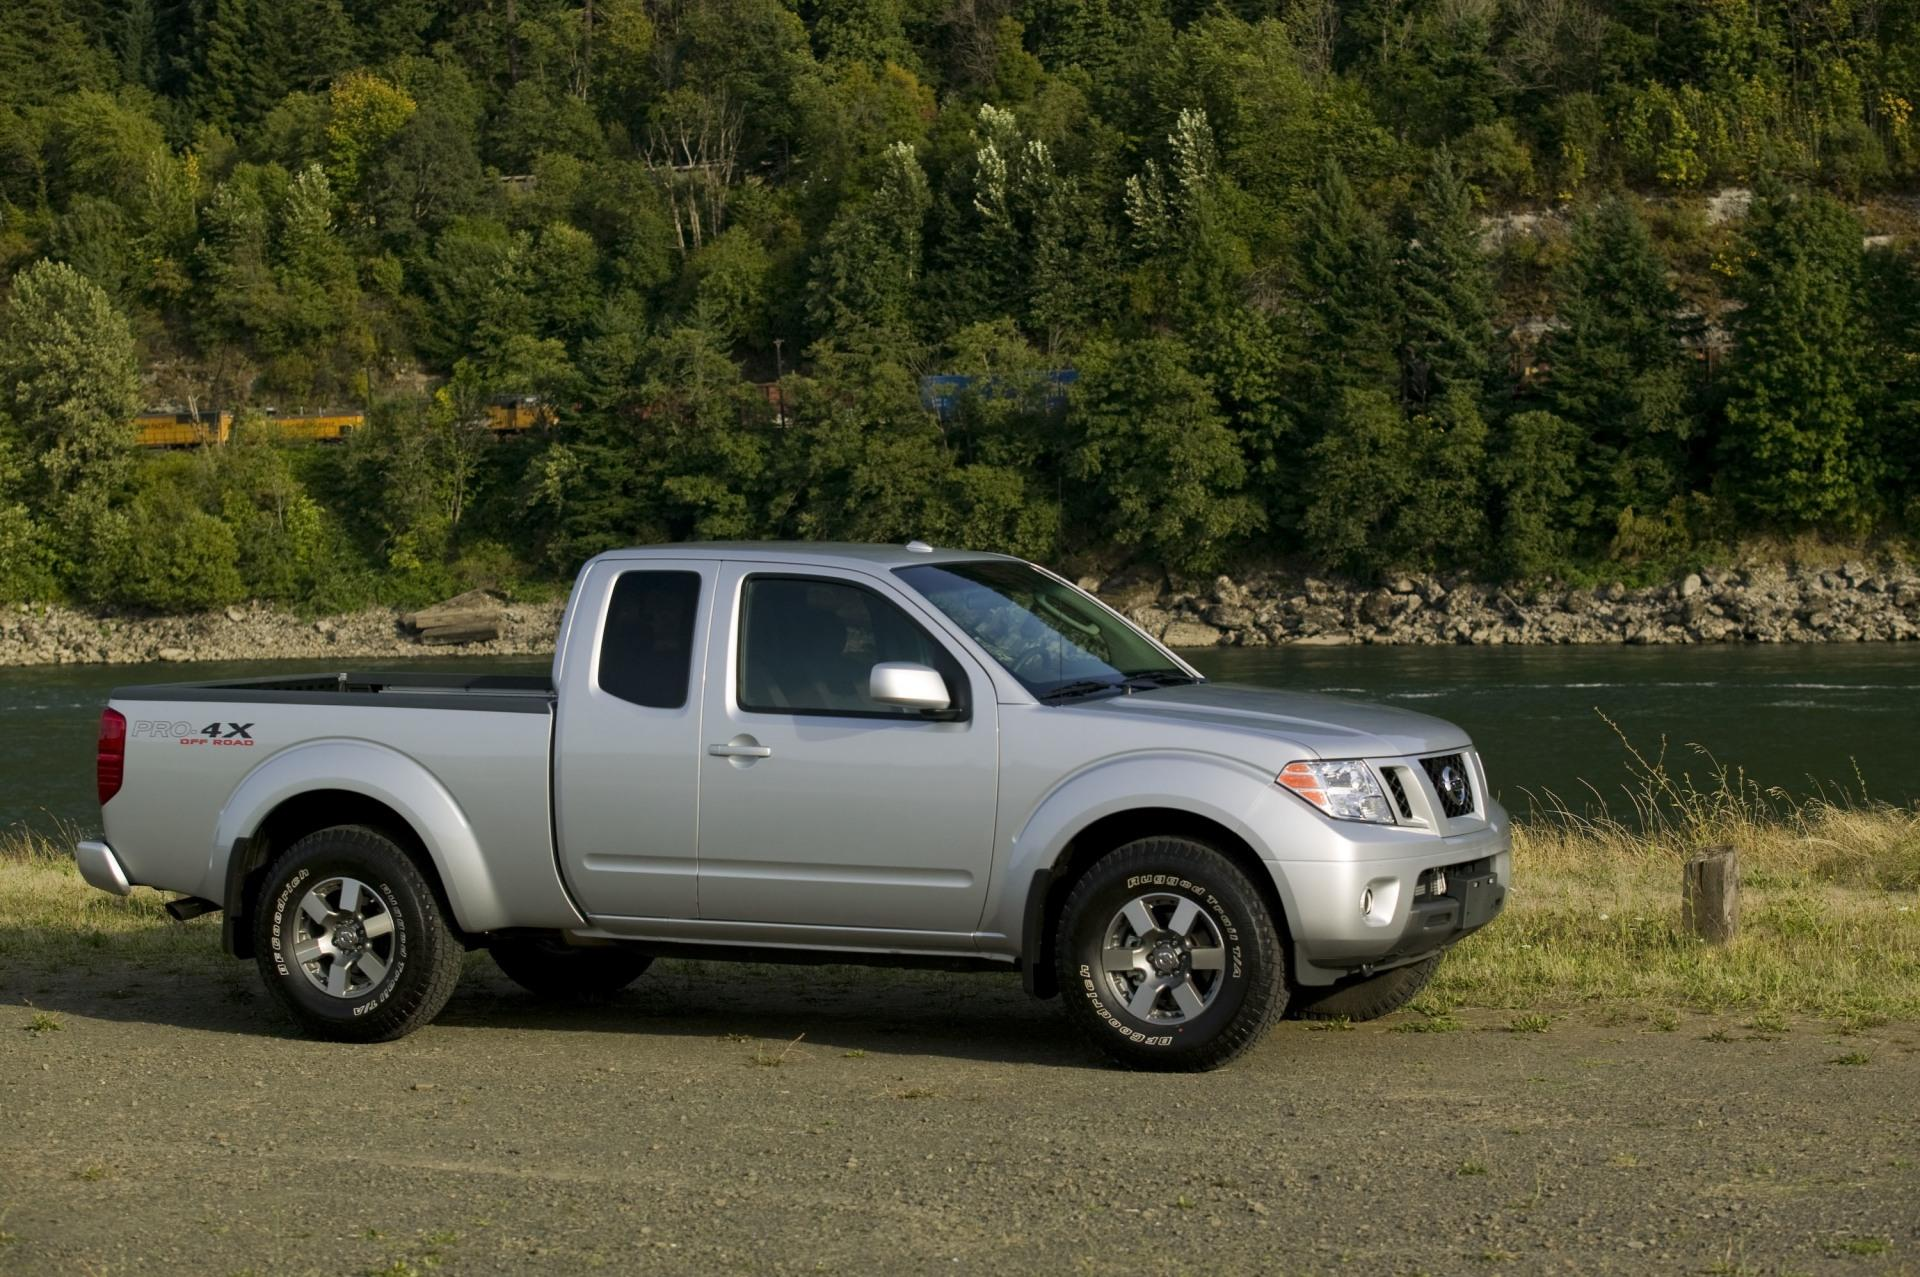 Nissan Frontier King Cab Bed Dimensions